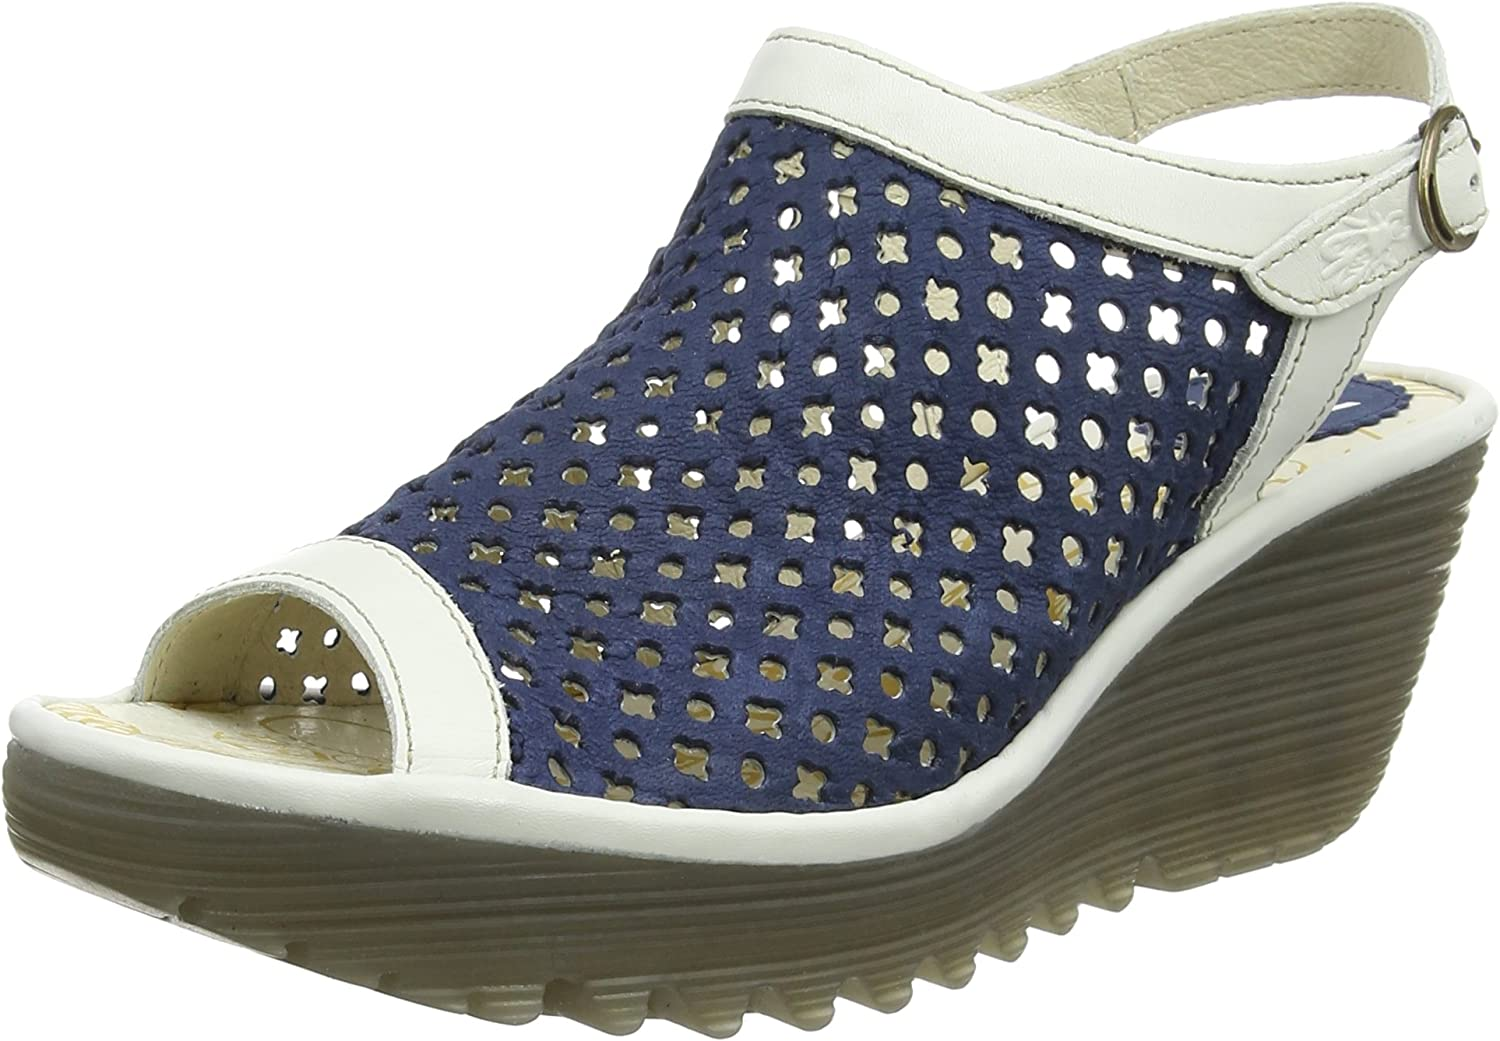 FLY London Damen Damen Damen Yuti734fly Wedge Sandal  e63adf